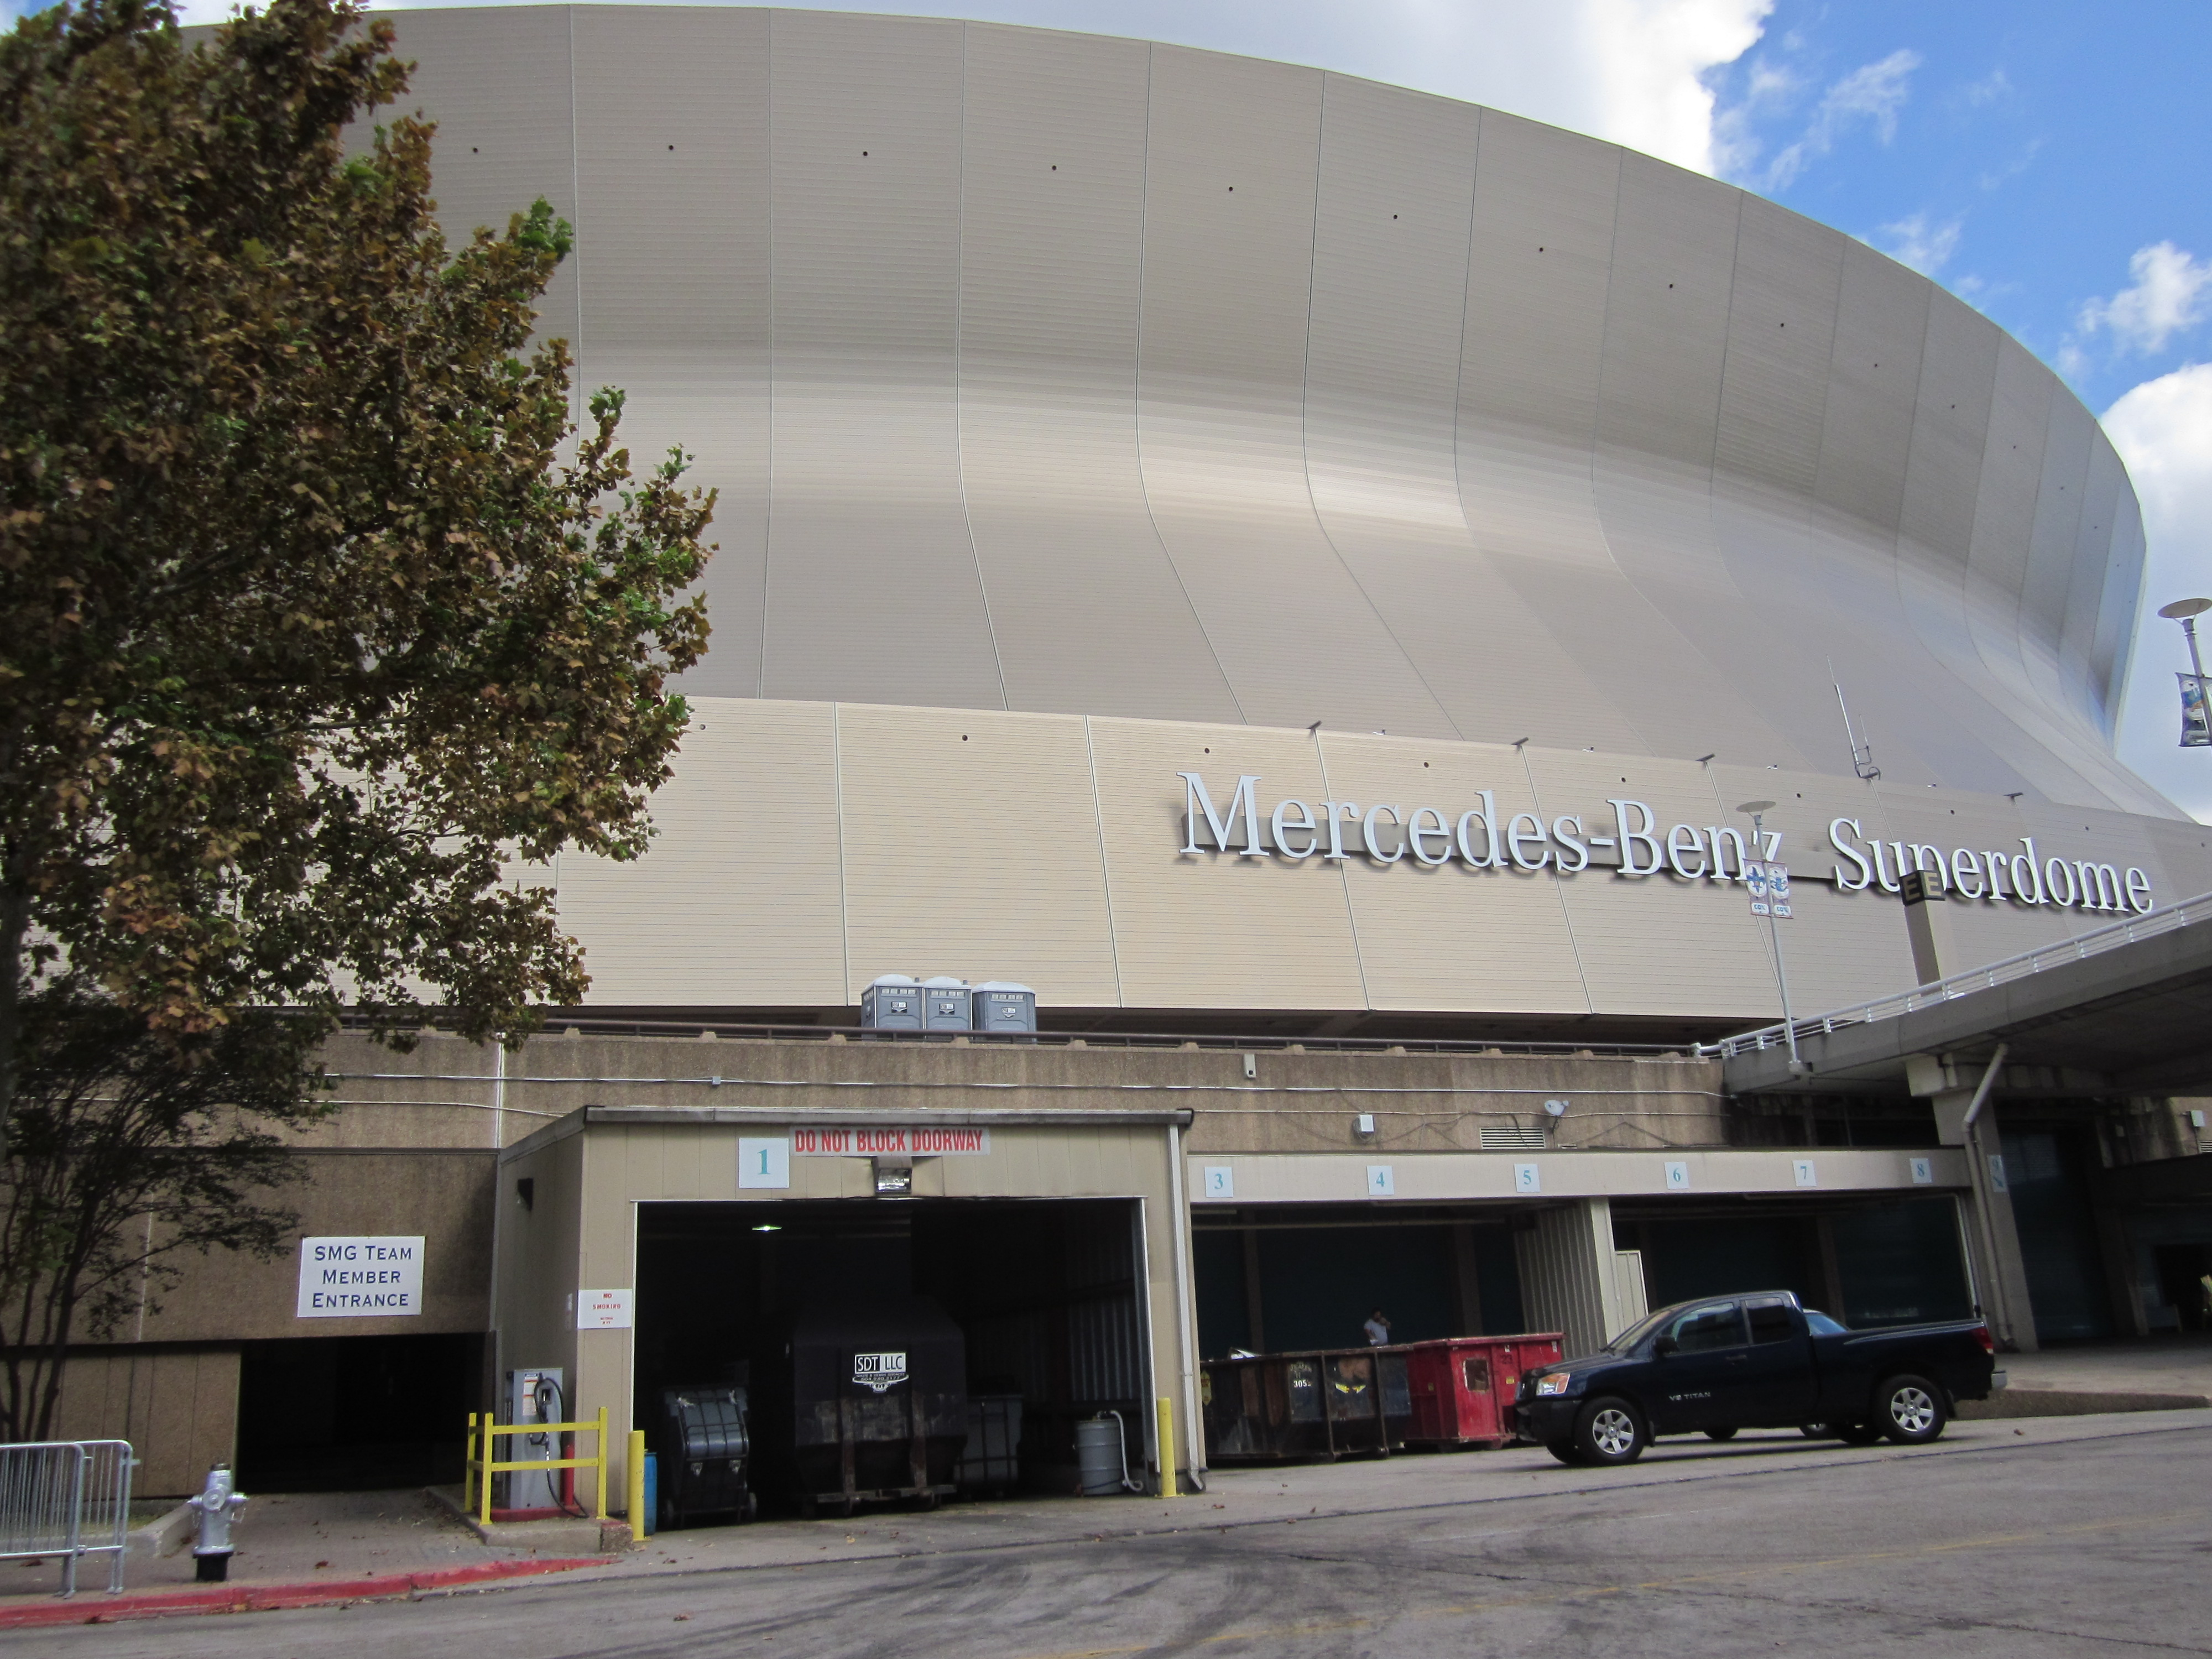 Mercedes benz superdome wiki for Hotels near the mercedes benz superdome